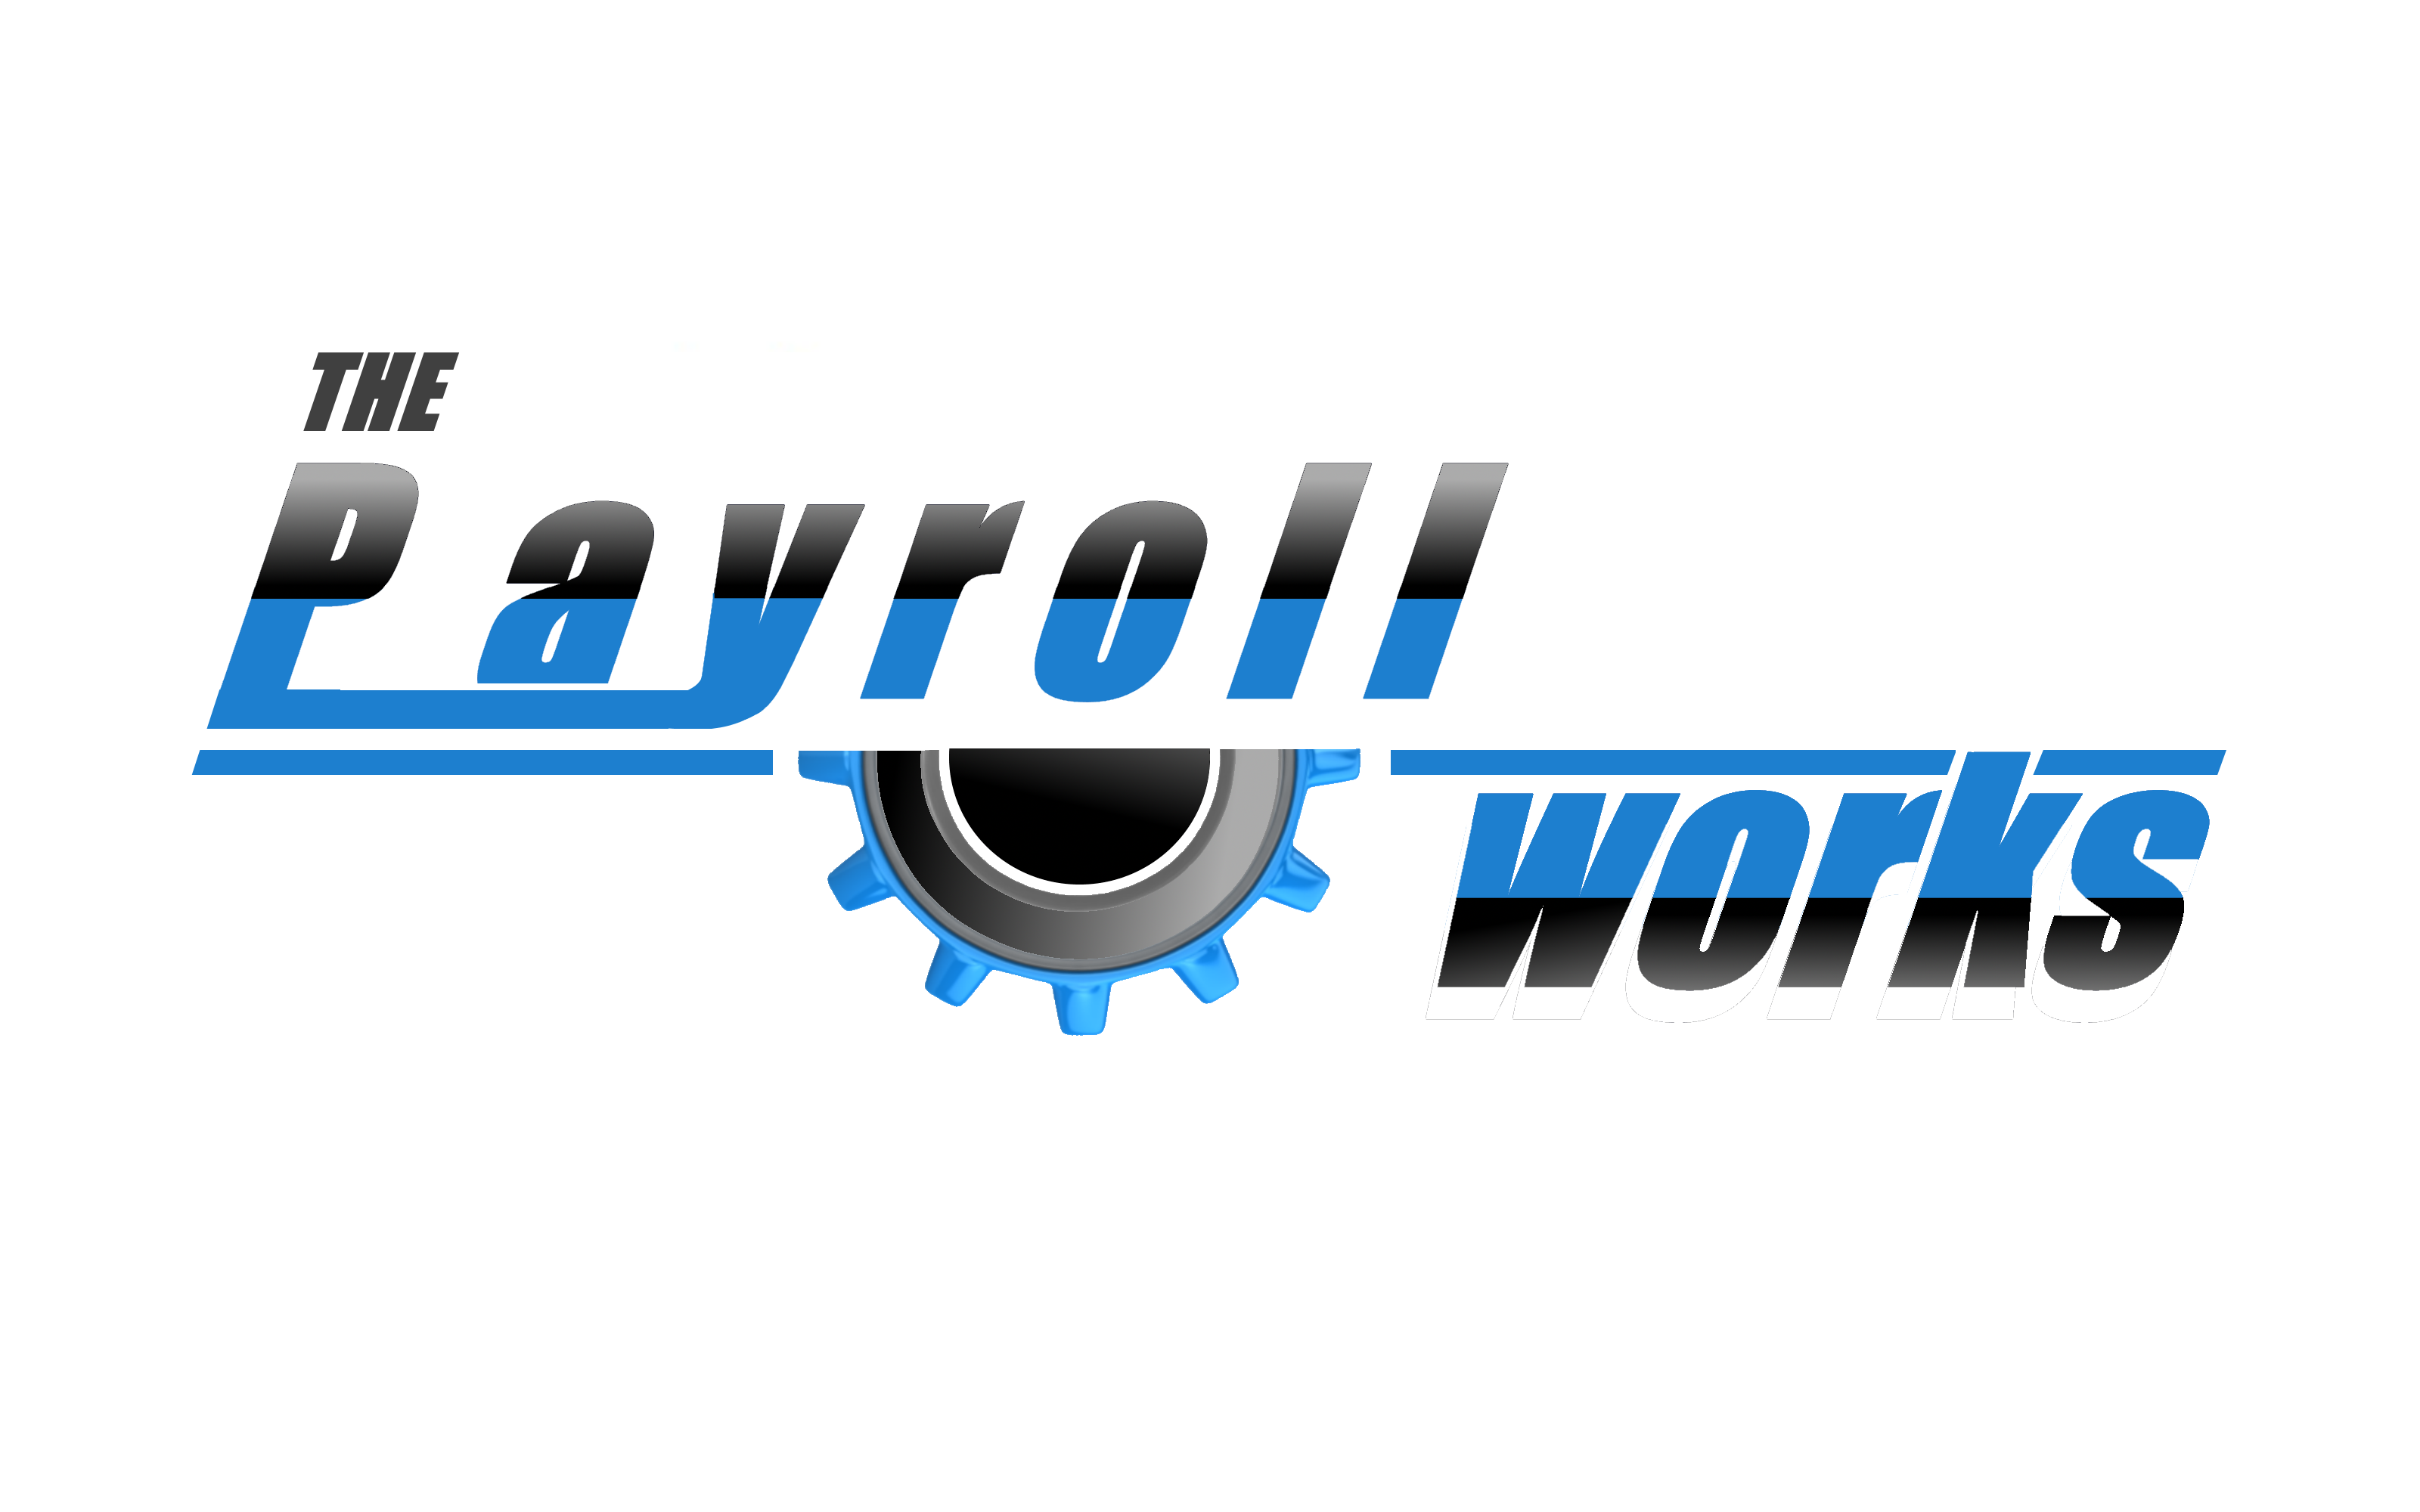 Logo Design by Roberto Bassi - Entry No. 88 in the Logo Design Contest Captivating Logo Design for The Payroll Works.